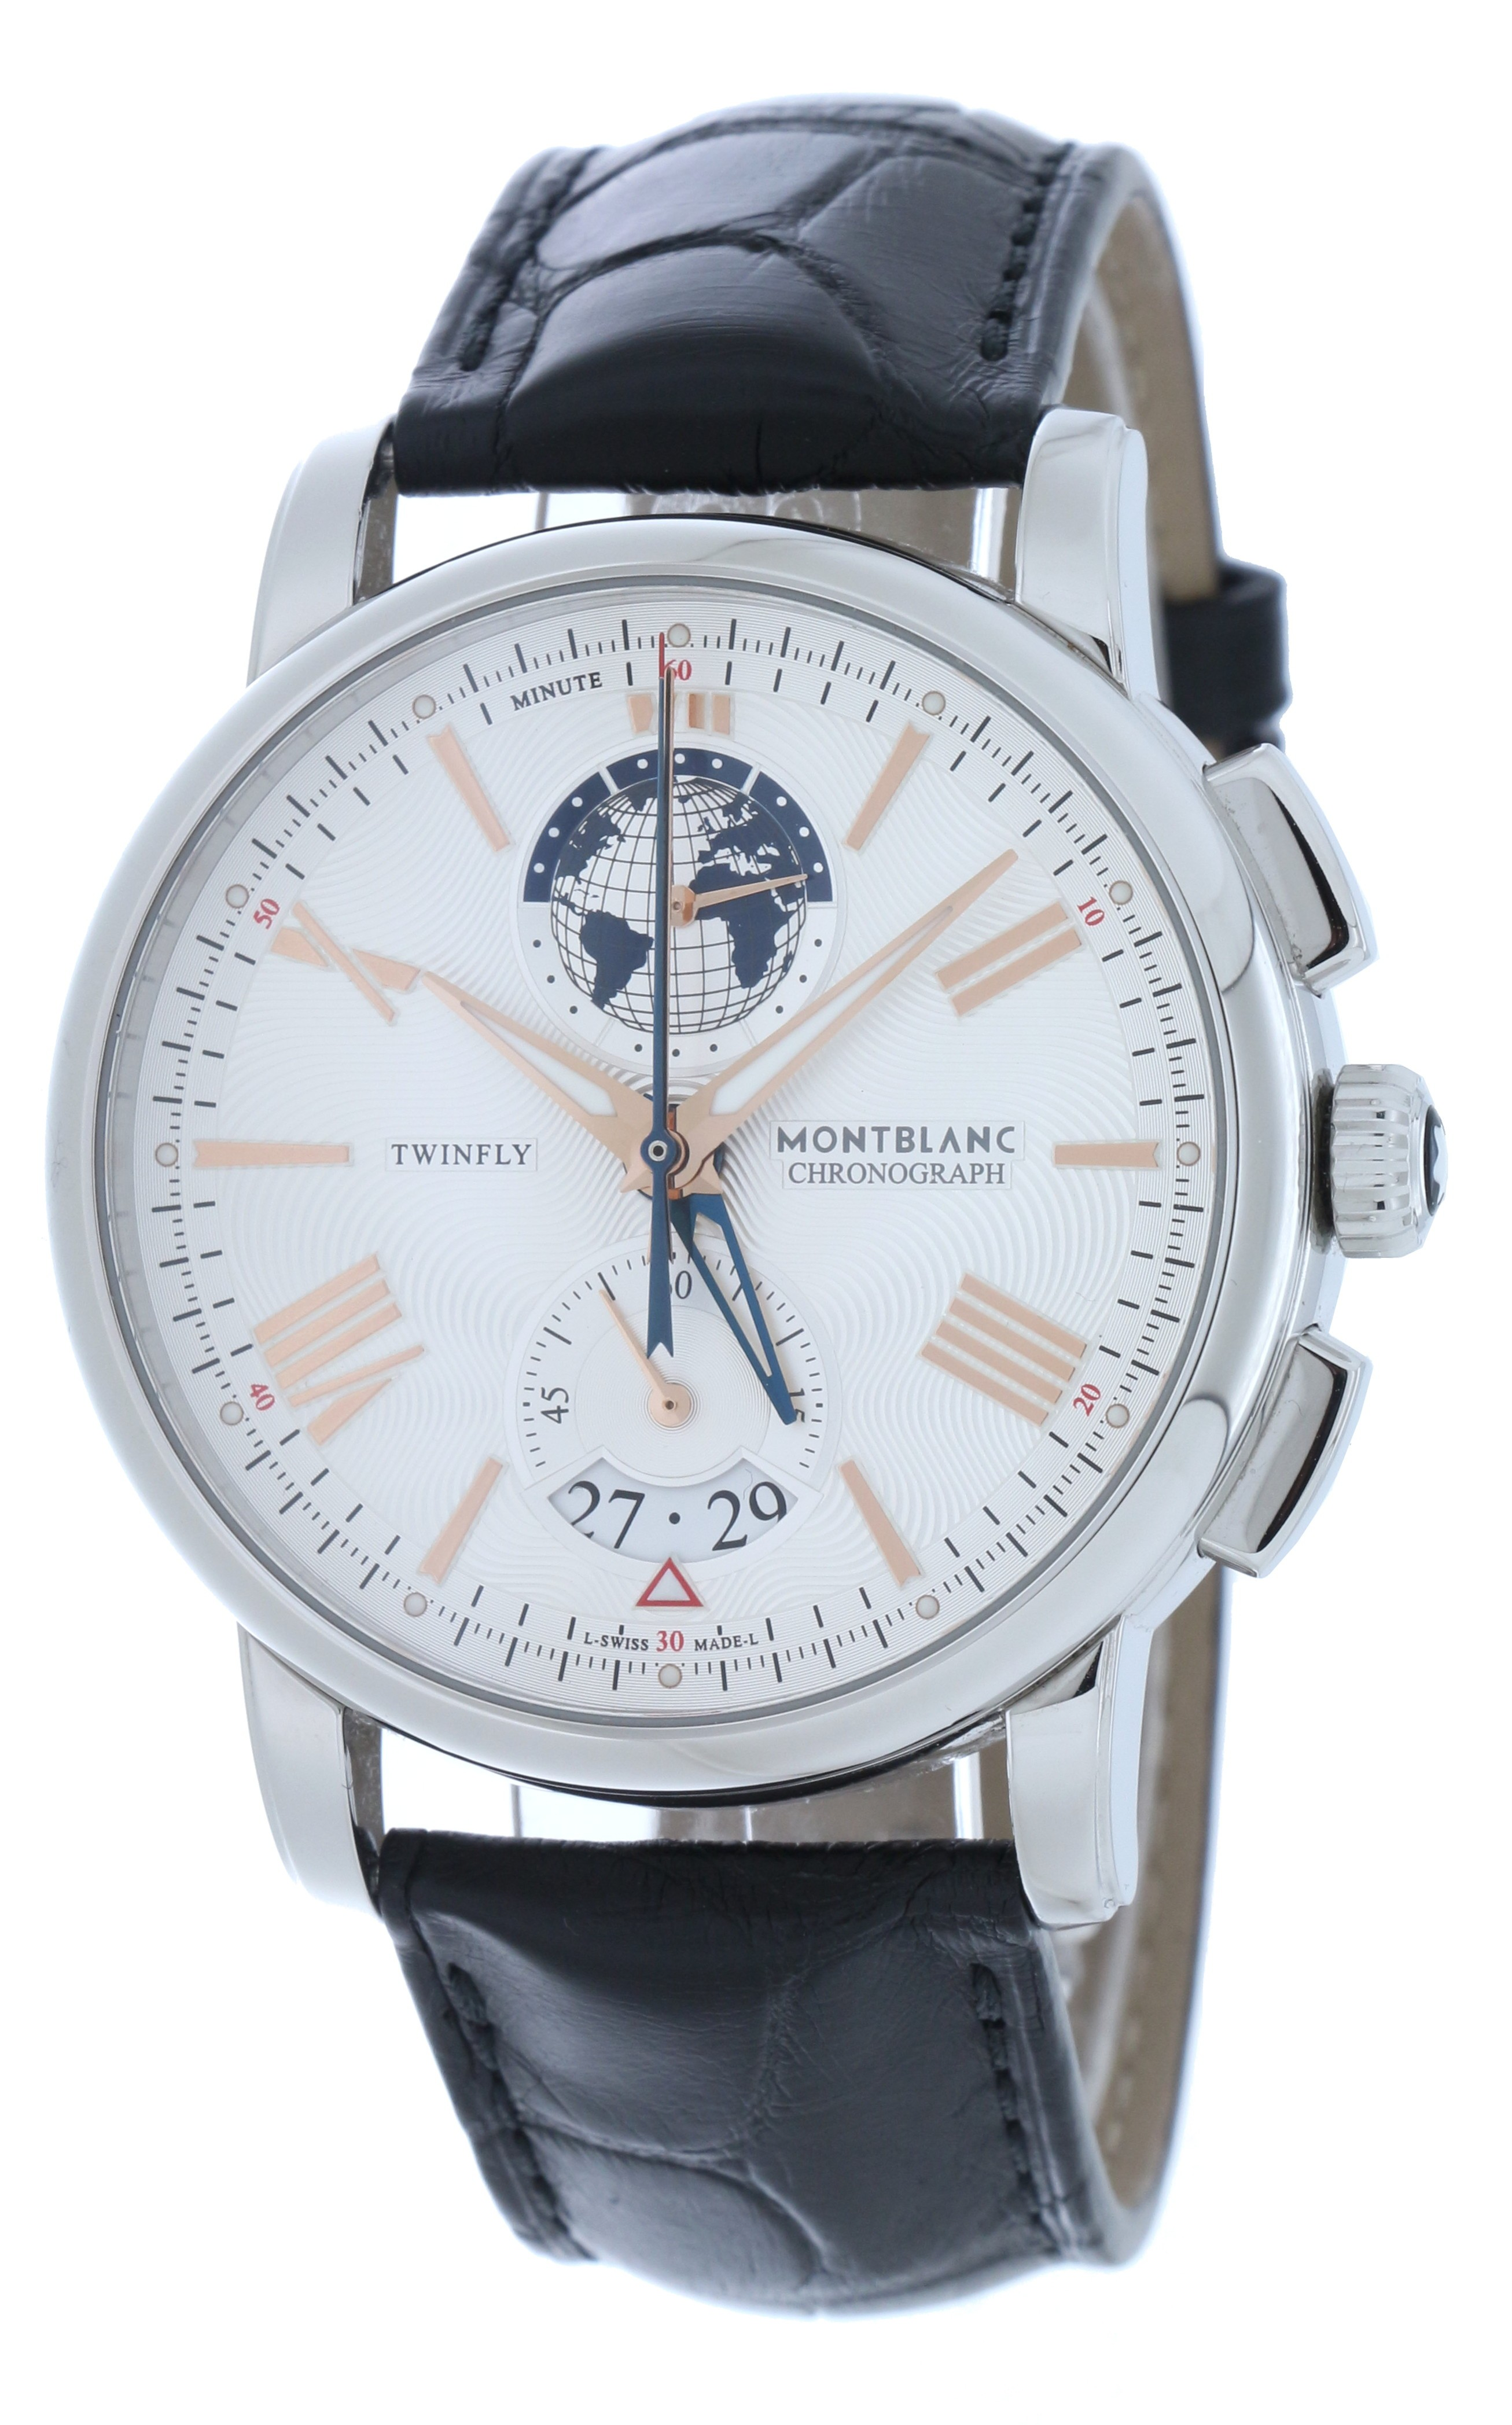 twinfly-chronograph-110-years-edition-1